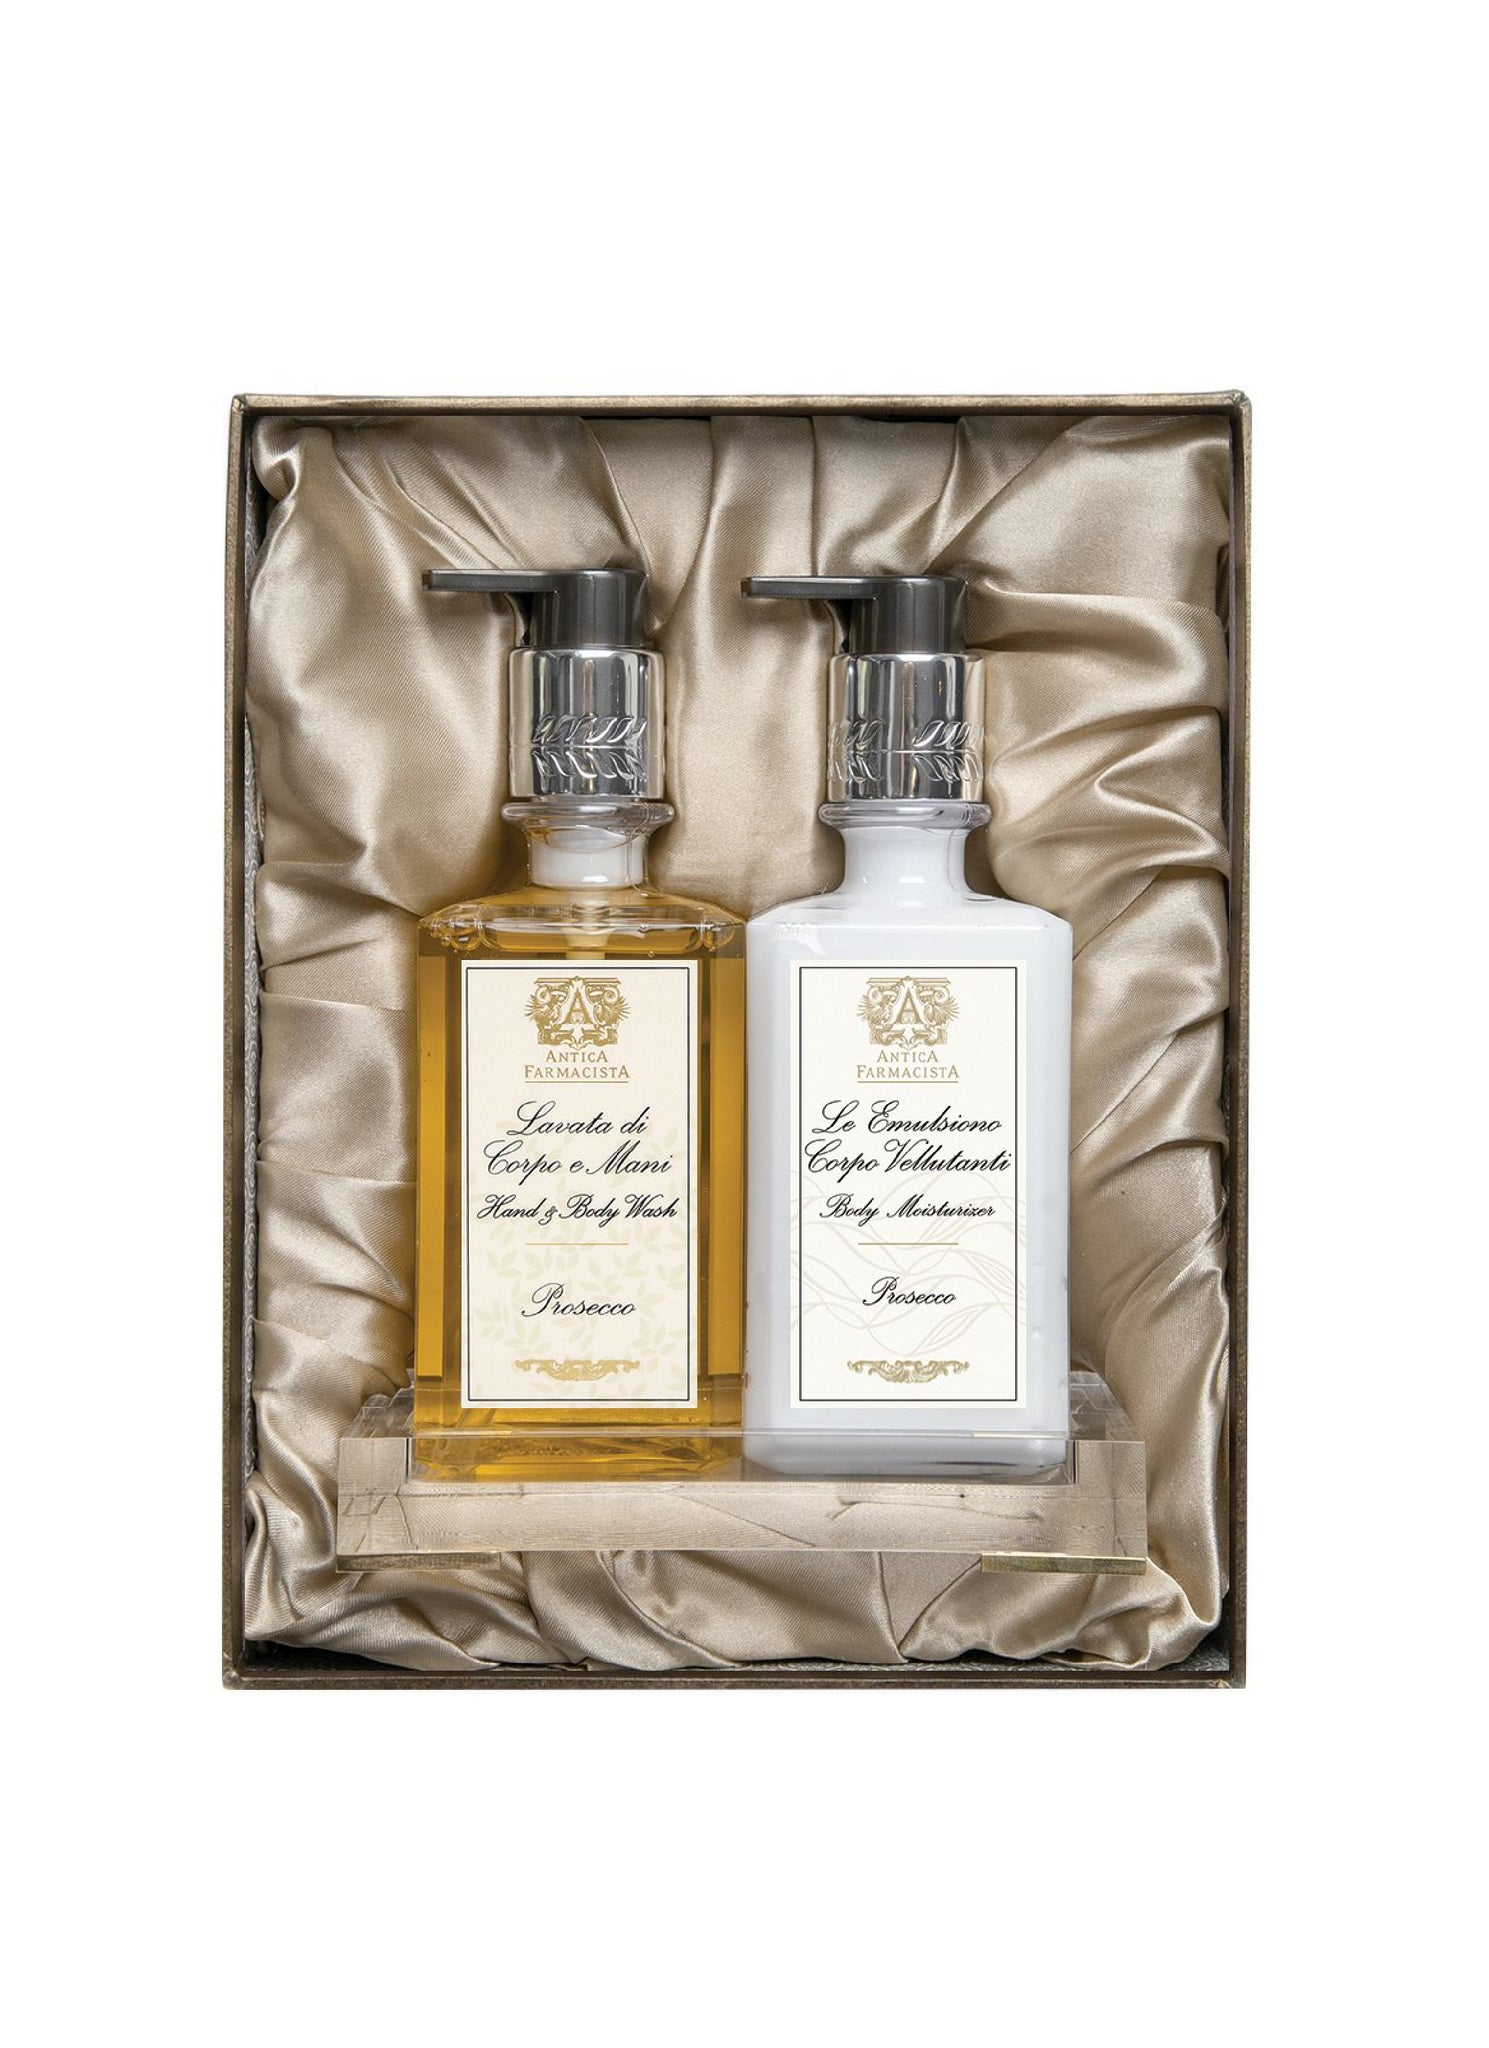 Acrylic Bath & Body Gift Set. Prosecco